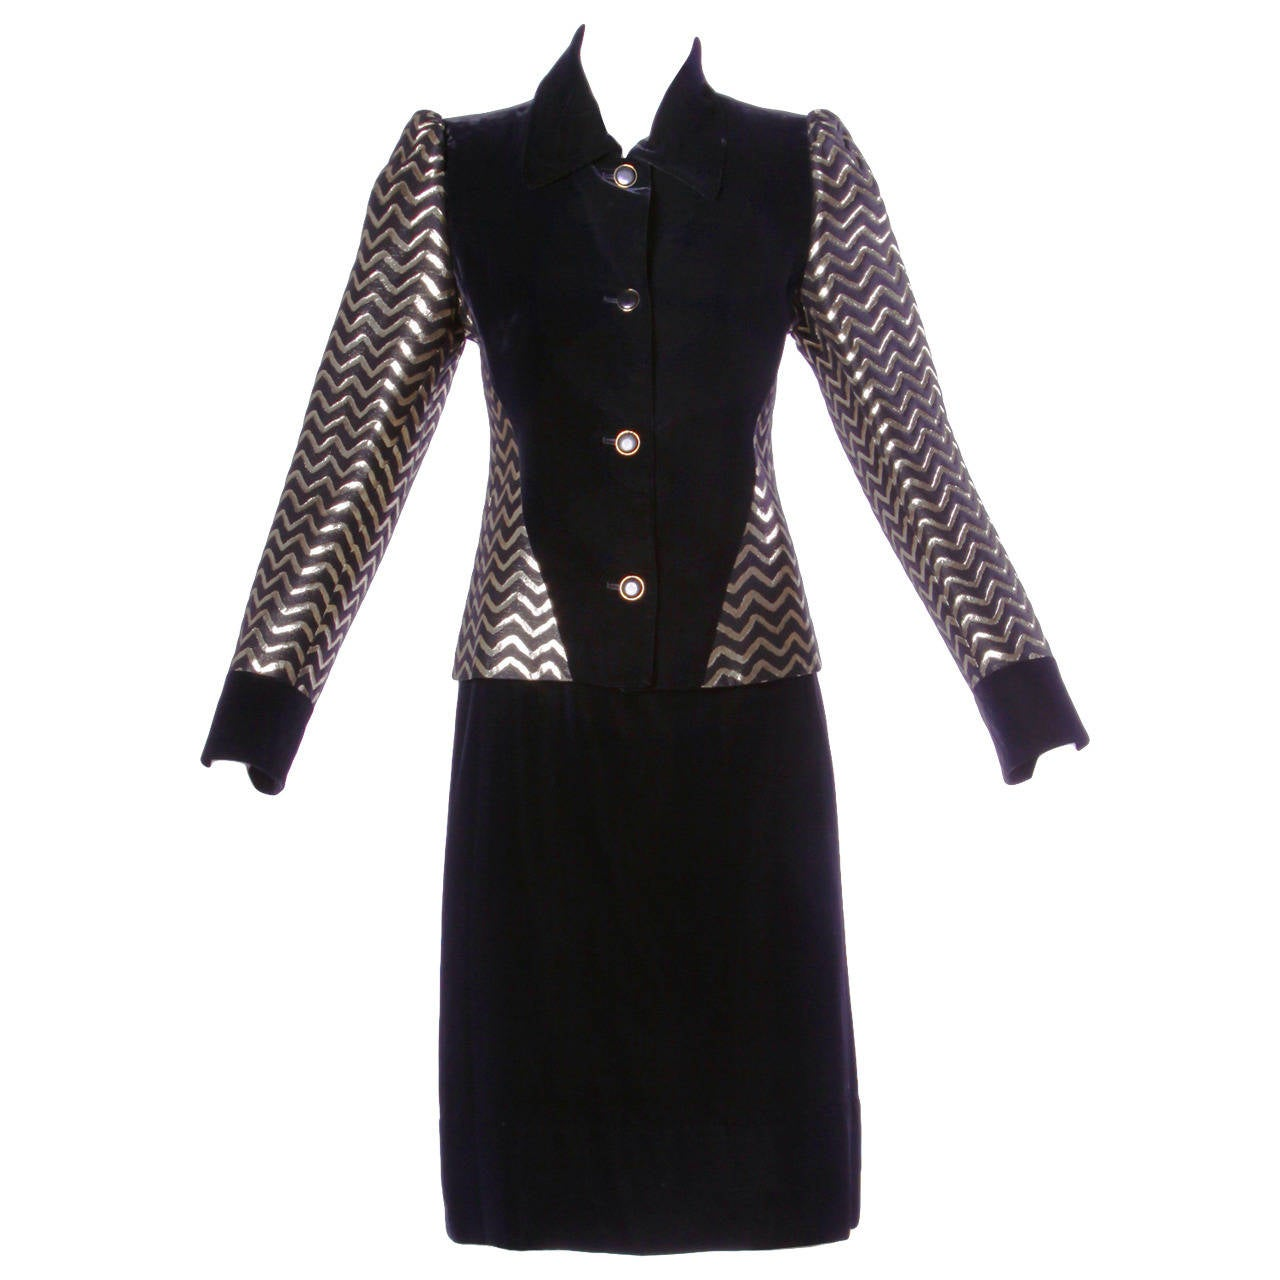 Givenchy Vintage Metallic Gold + Black Vevet Jacket + Skirt Ensemble